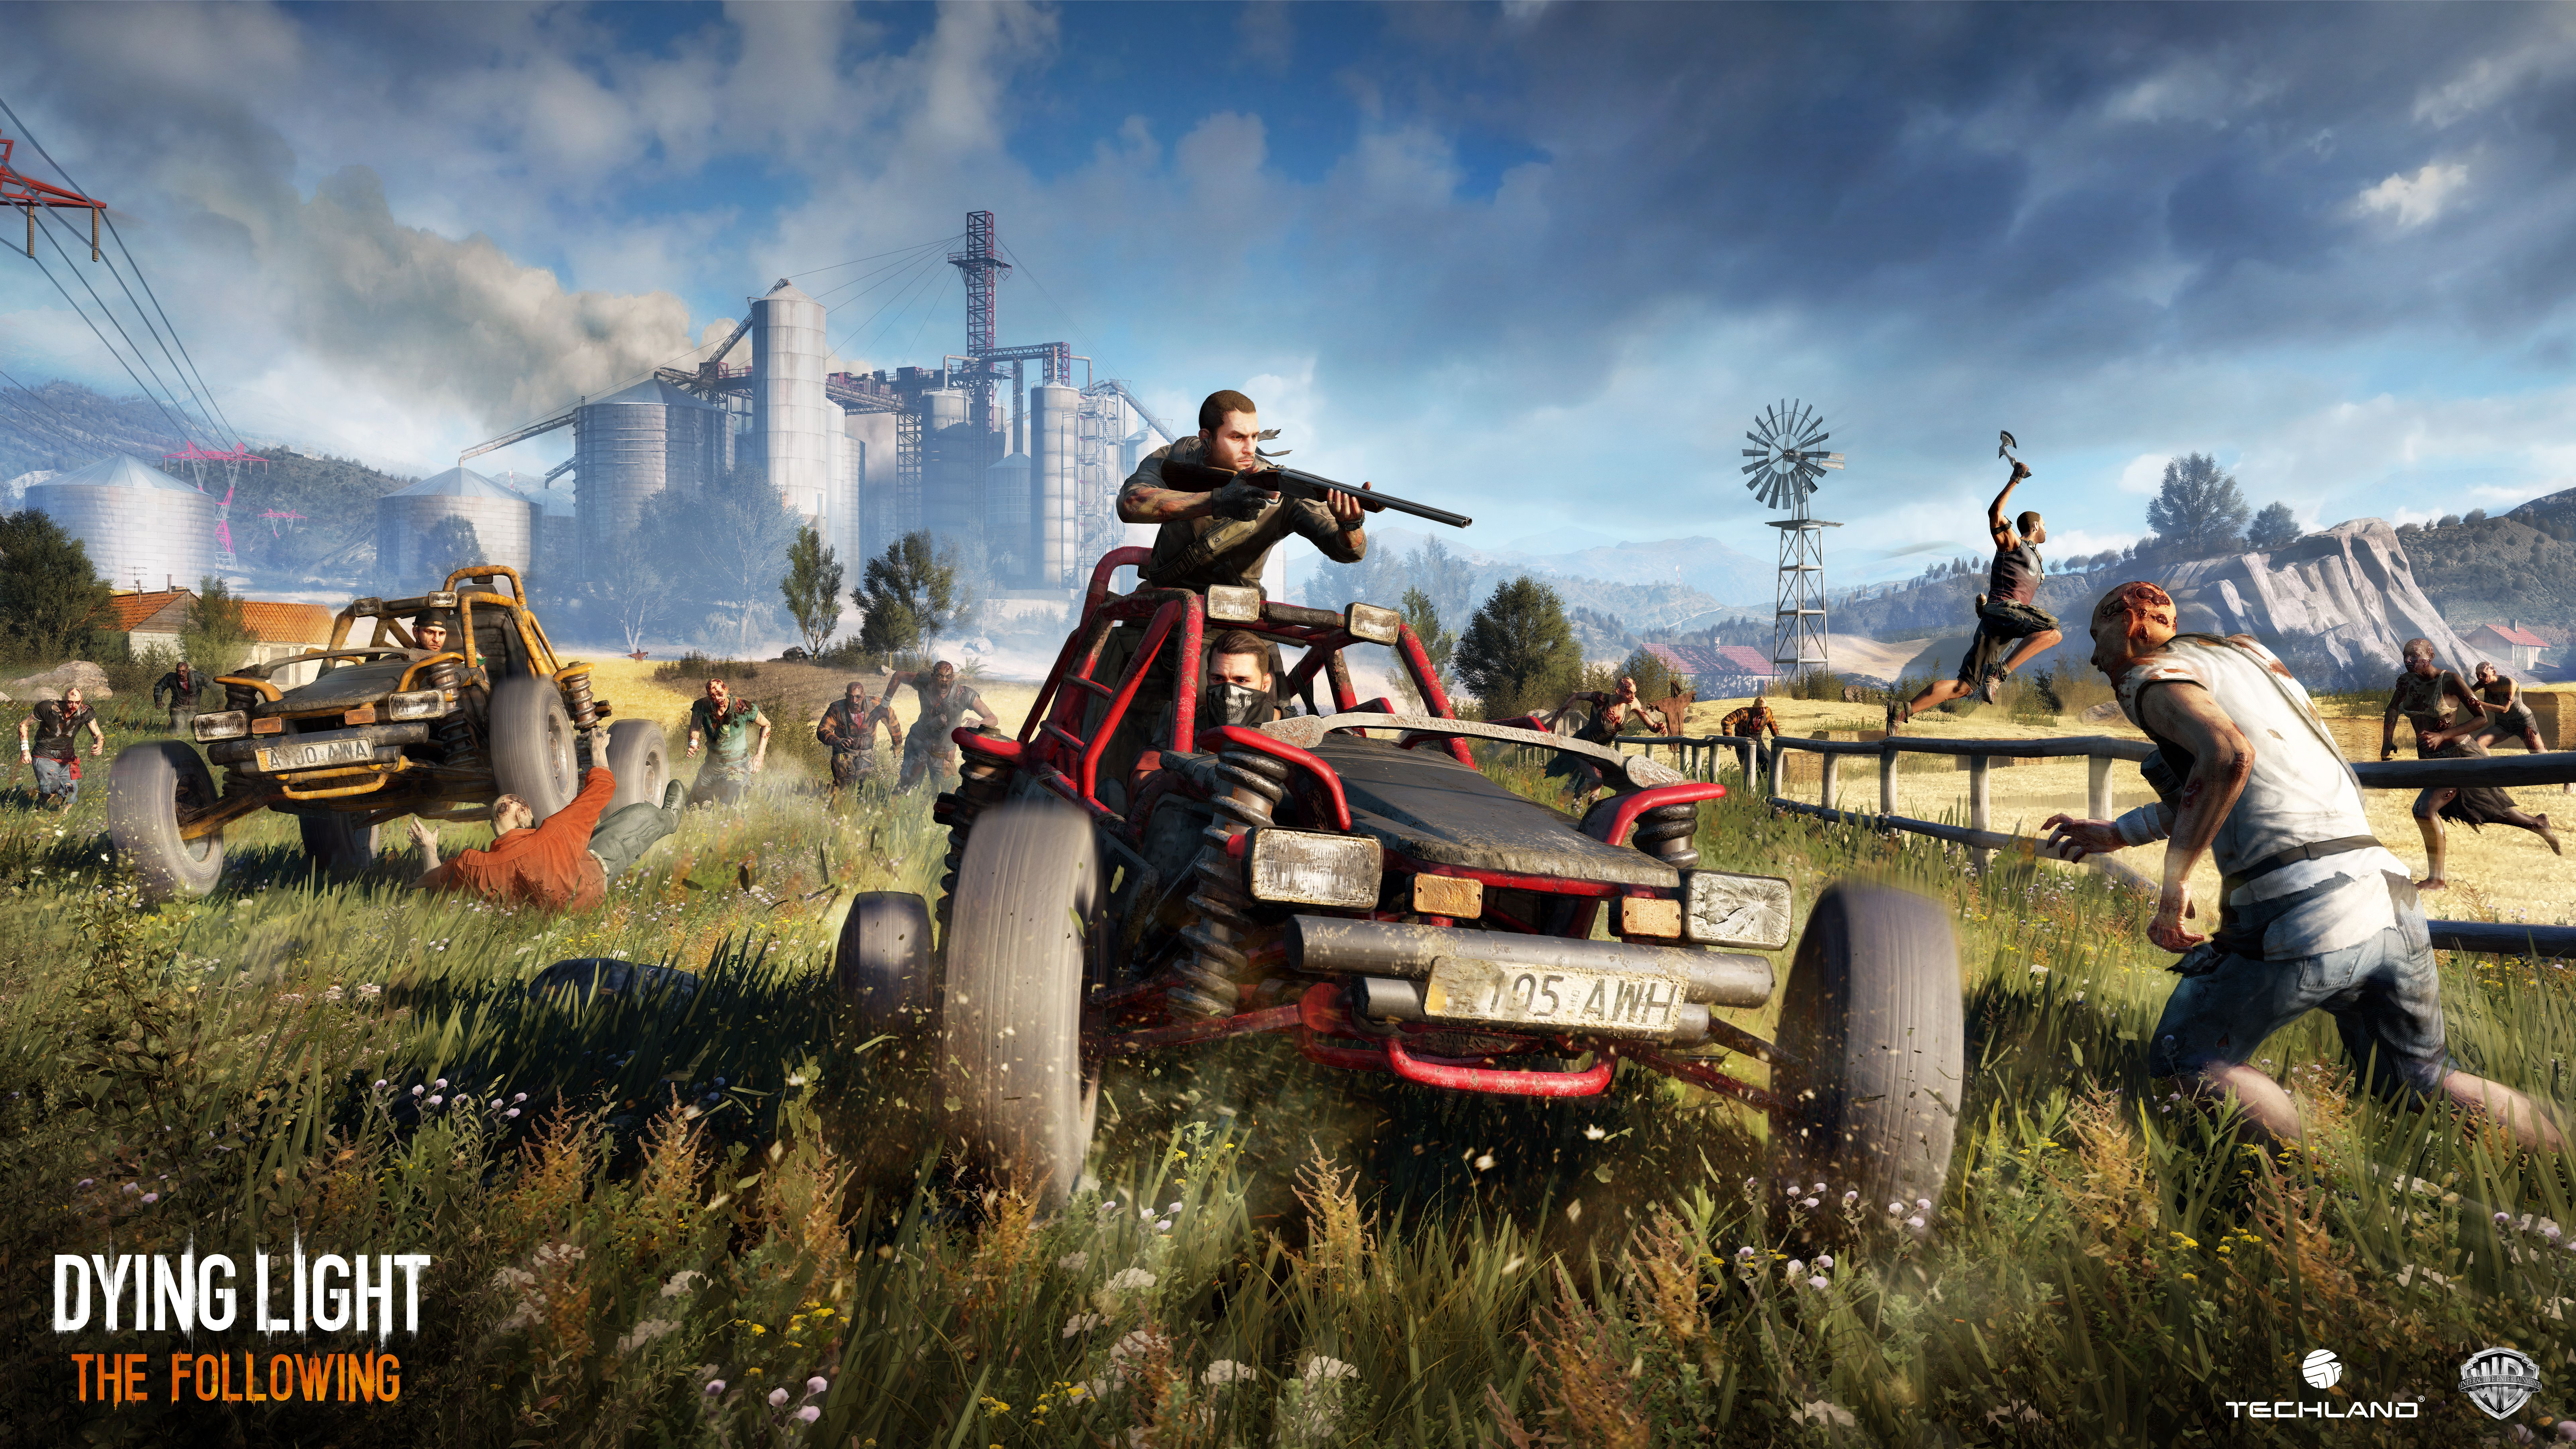 Dying Light 4k Wallpapers Top Free Dying Light 4k